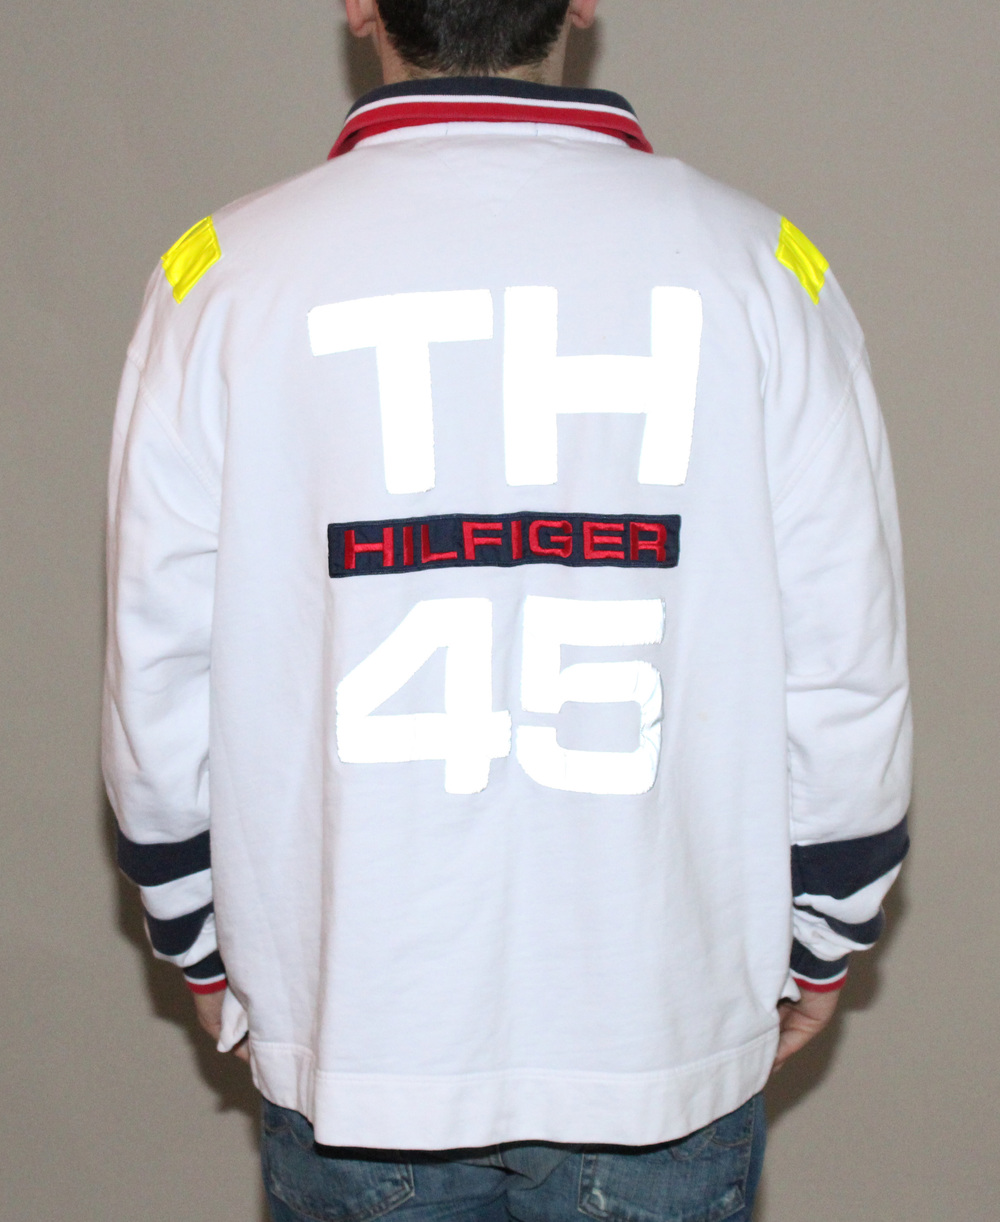 8f078882 Vintage Tommy Hilfiger Sailing Gear 3M reflective long sleeve rugby